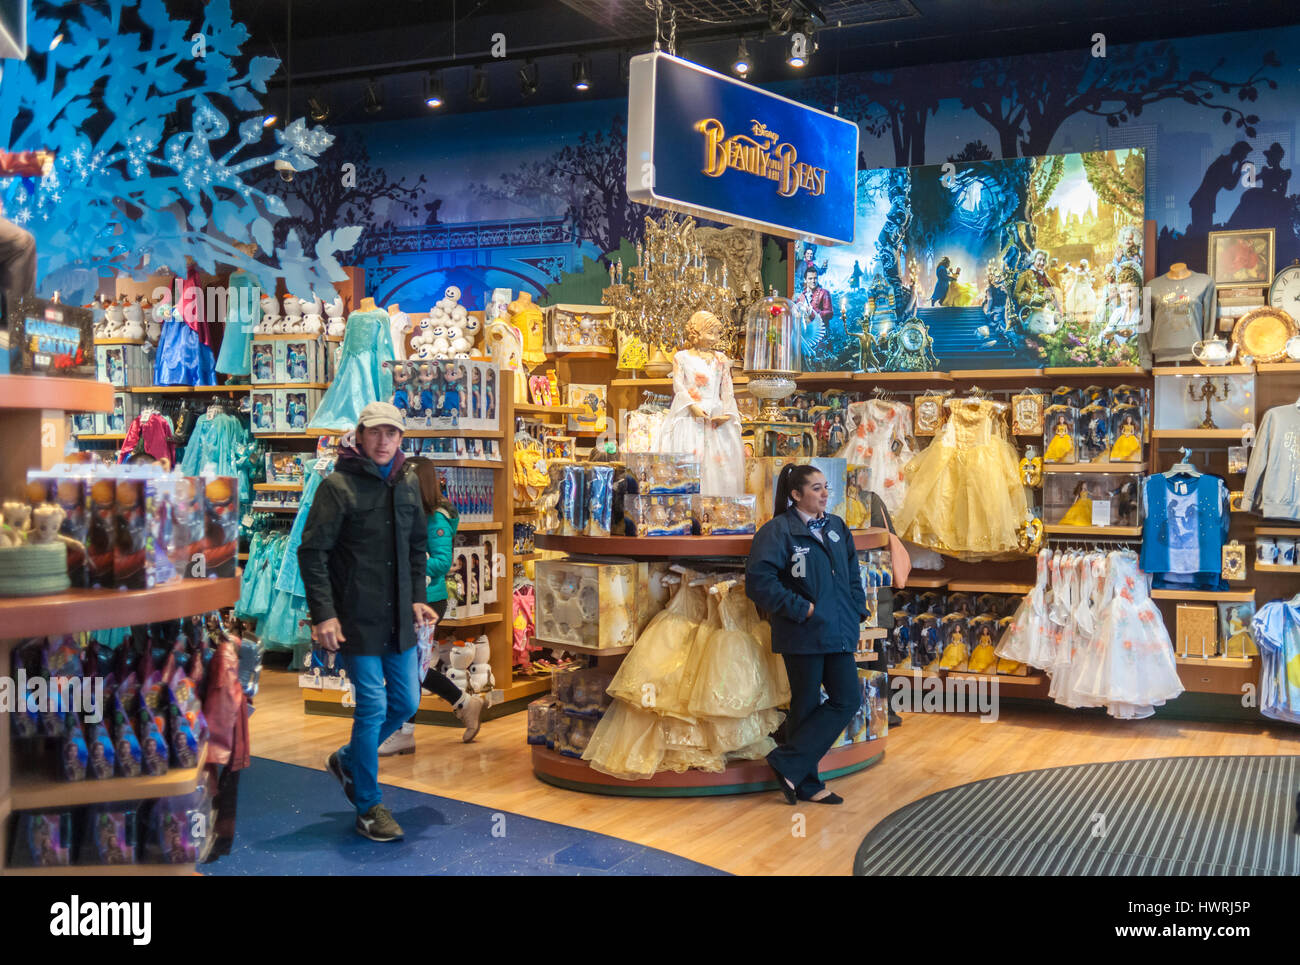 The Disney Store In Times Square In New York Promotes Merchandise Stock Photo Alamy